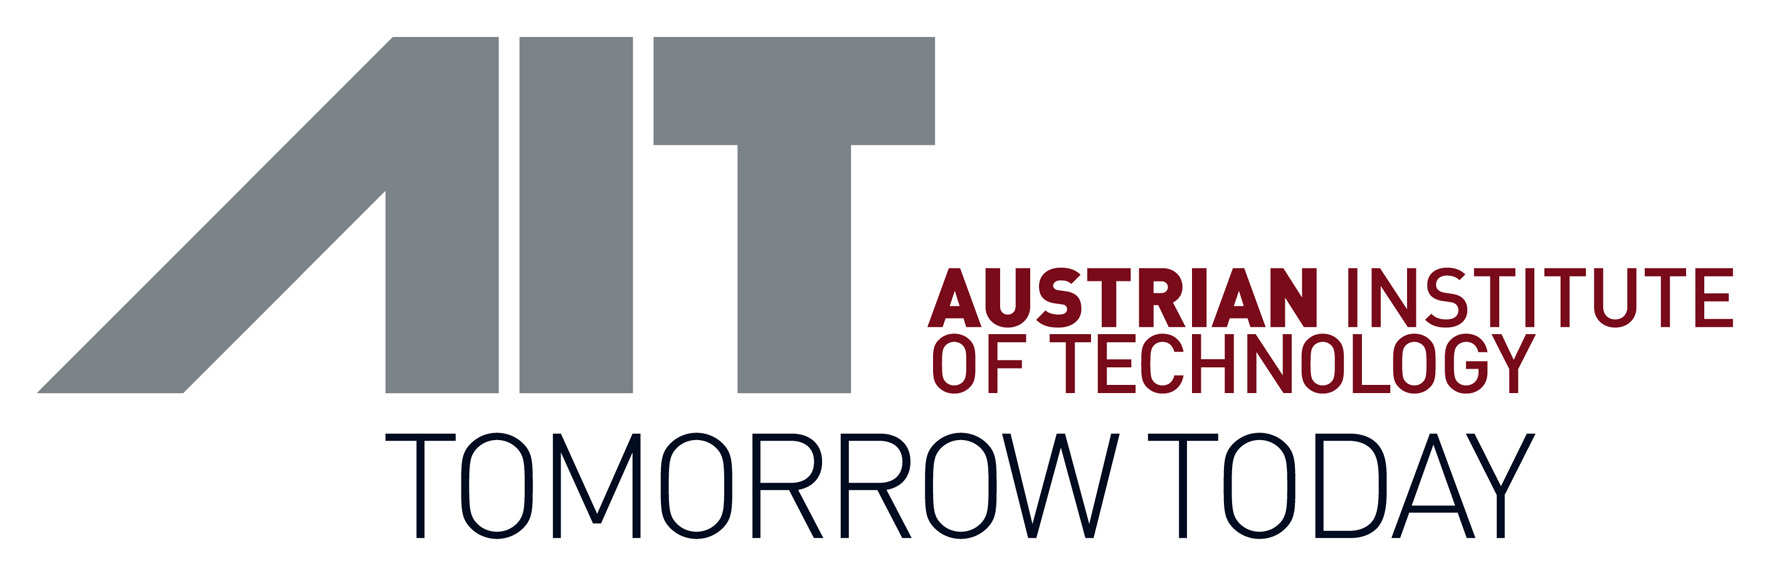 The Austrian Institute of Technology (AIT)